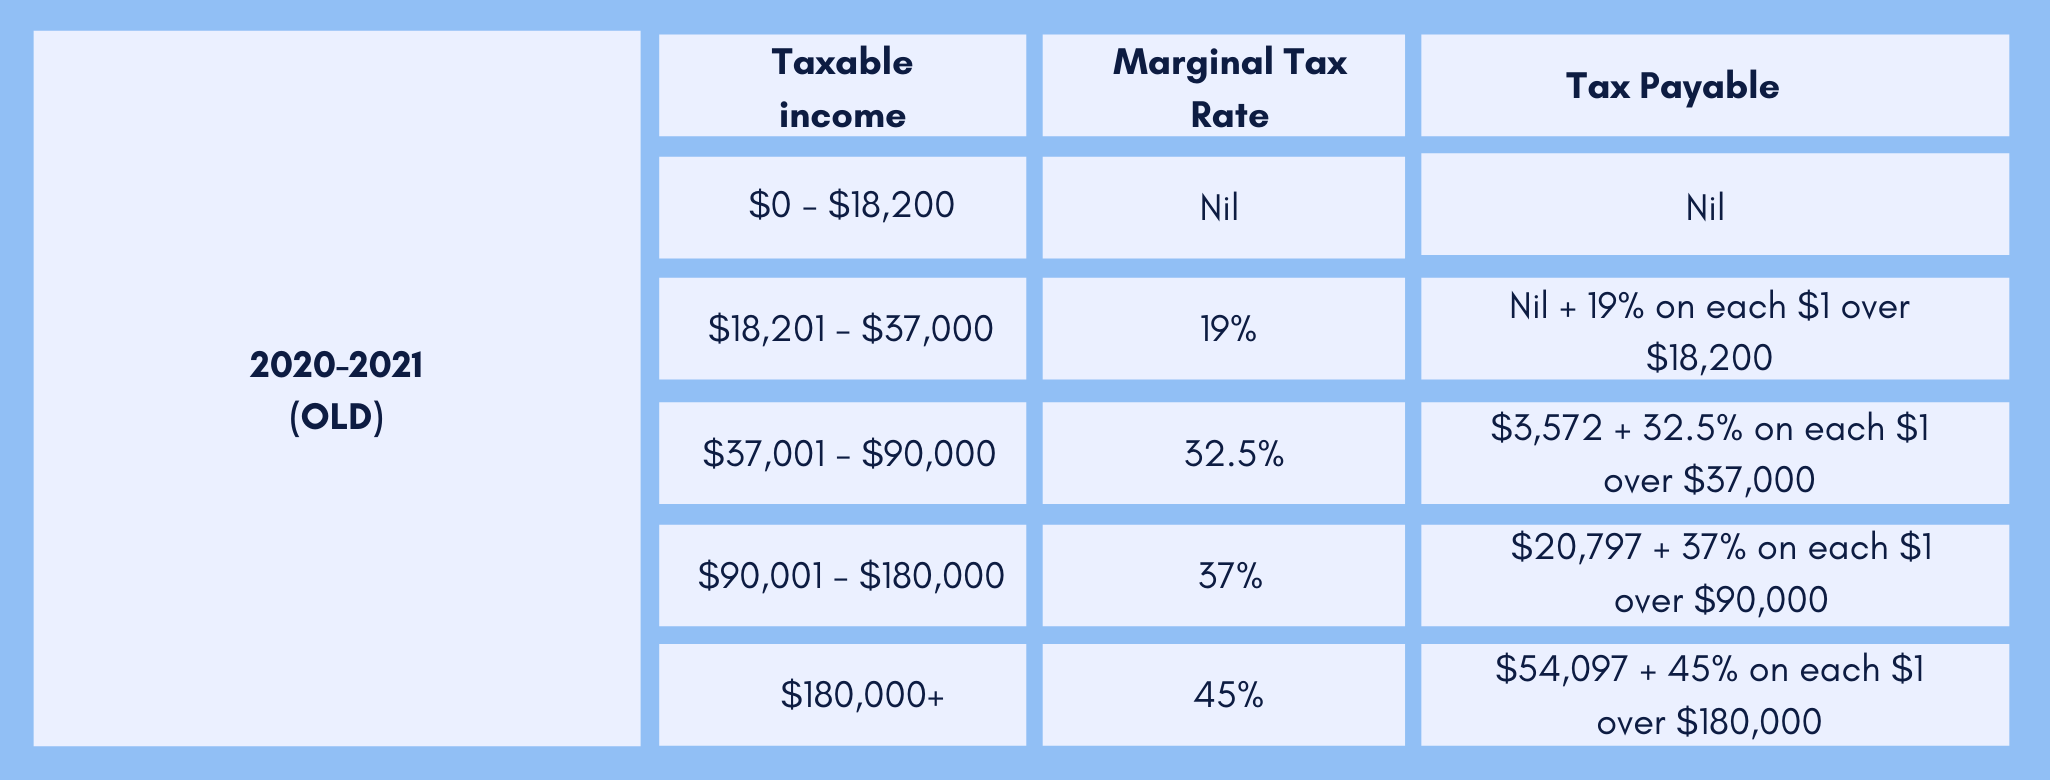 old personal income tax plan